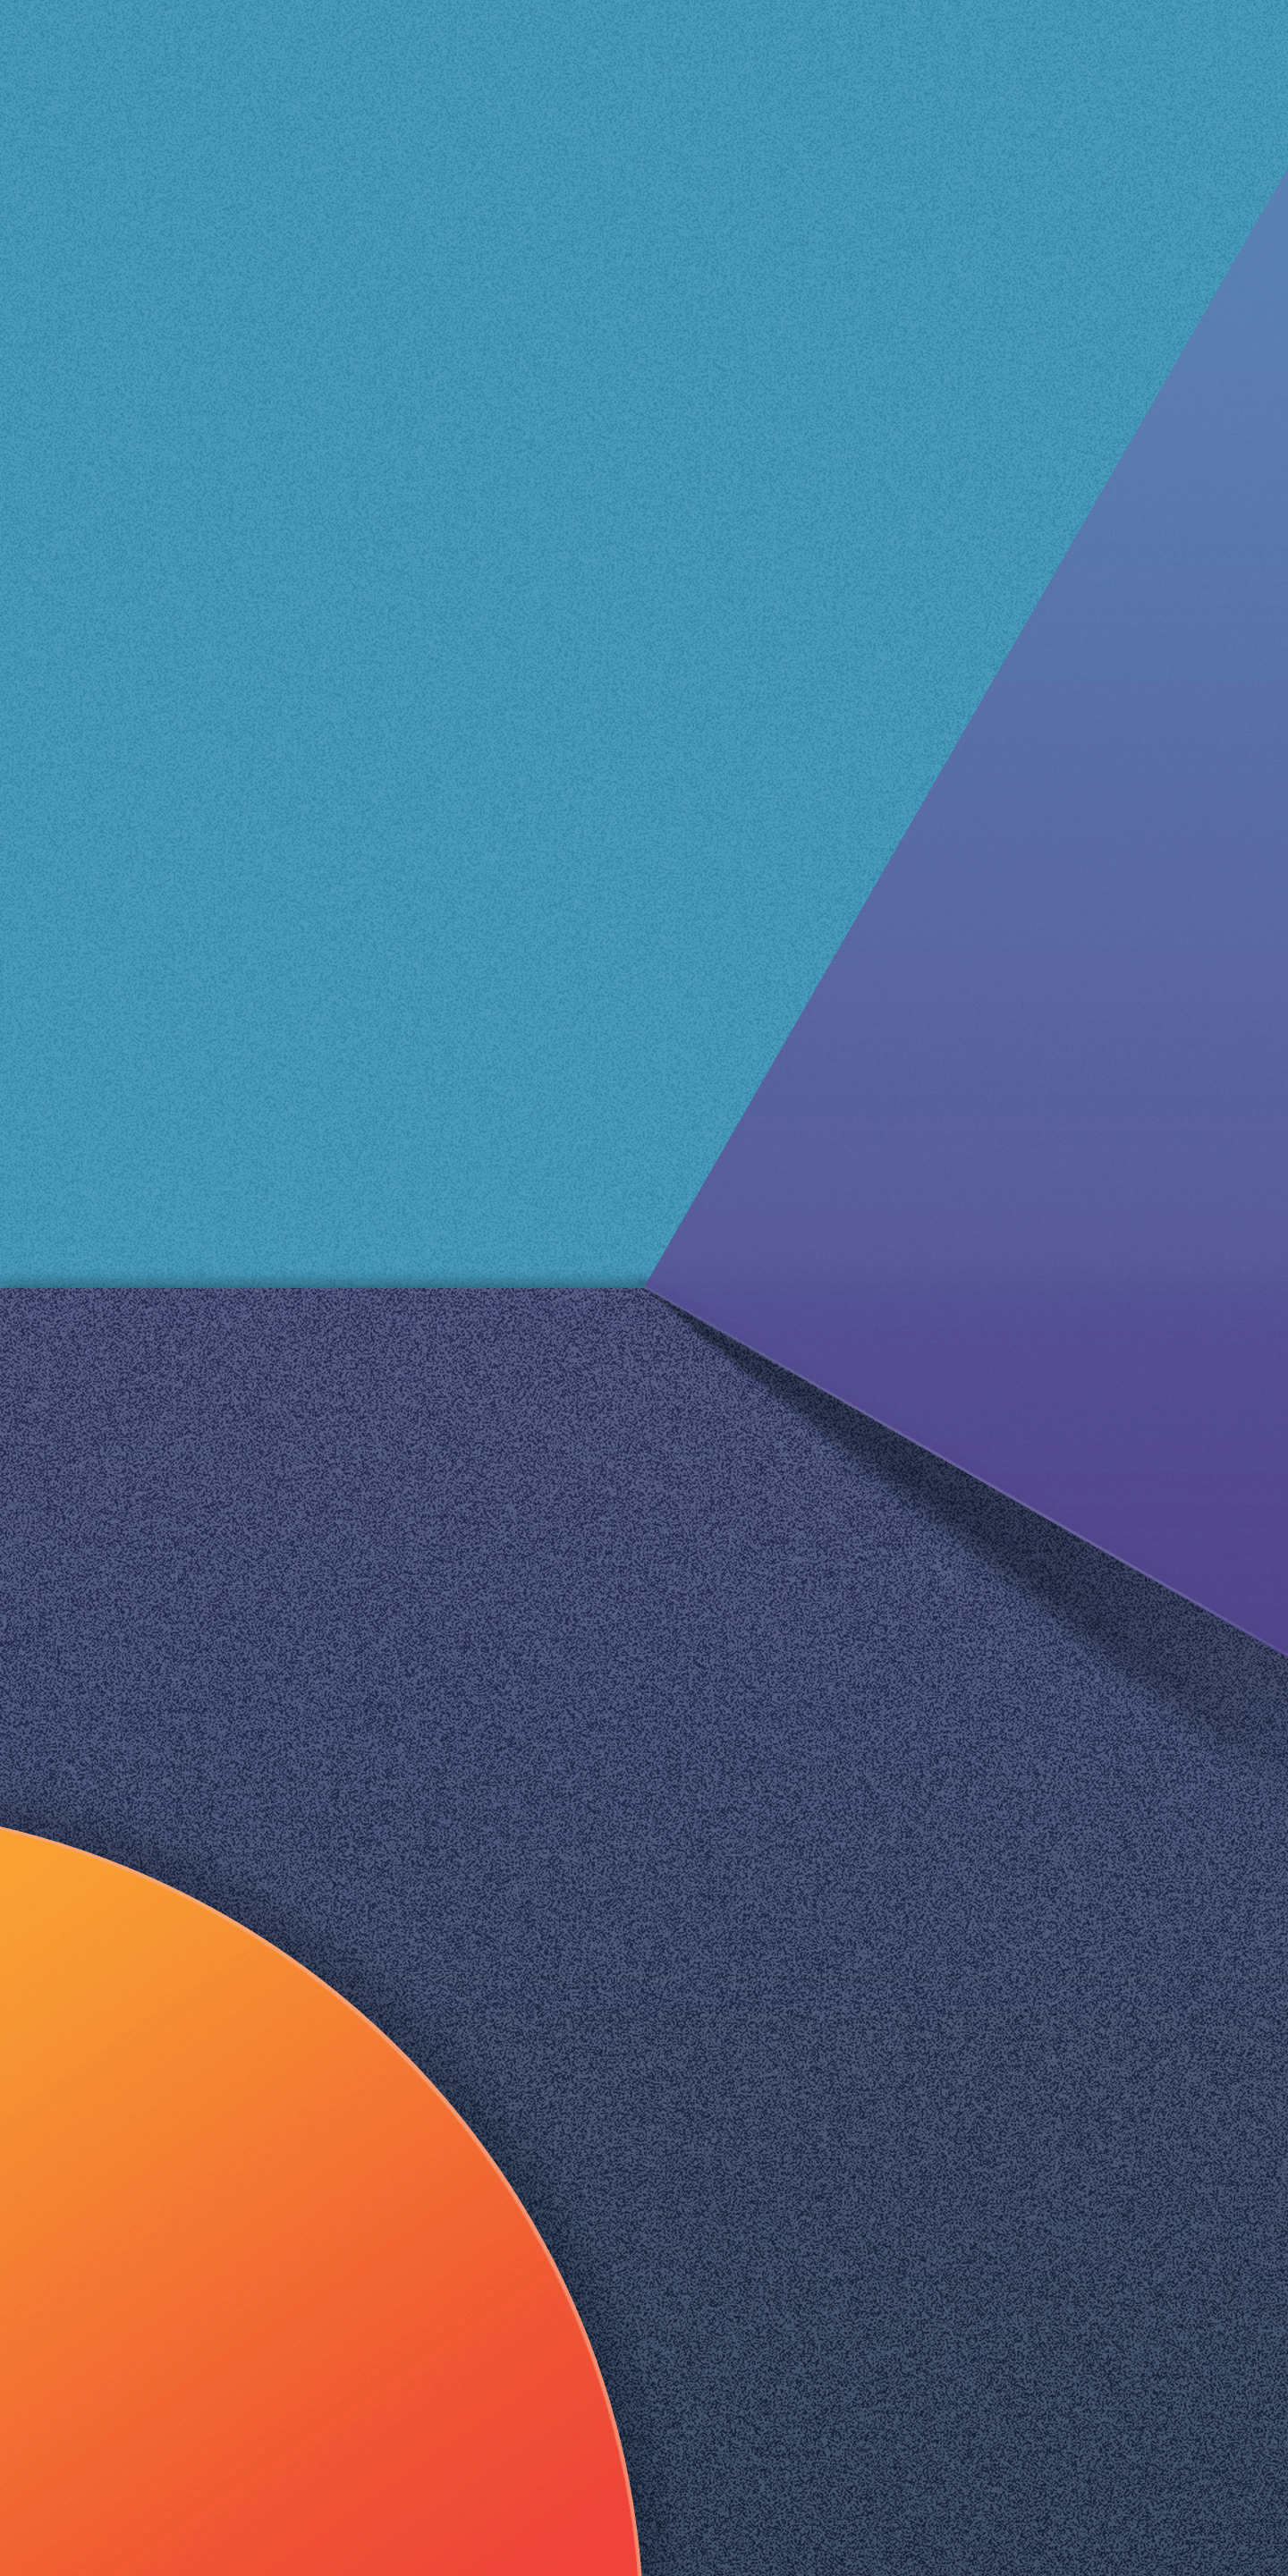 LG G6 Stock Wallpapers